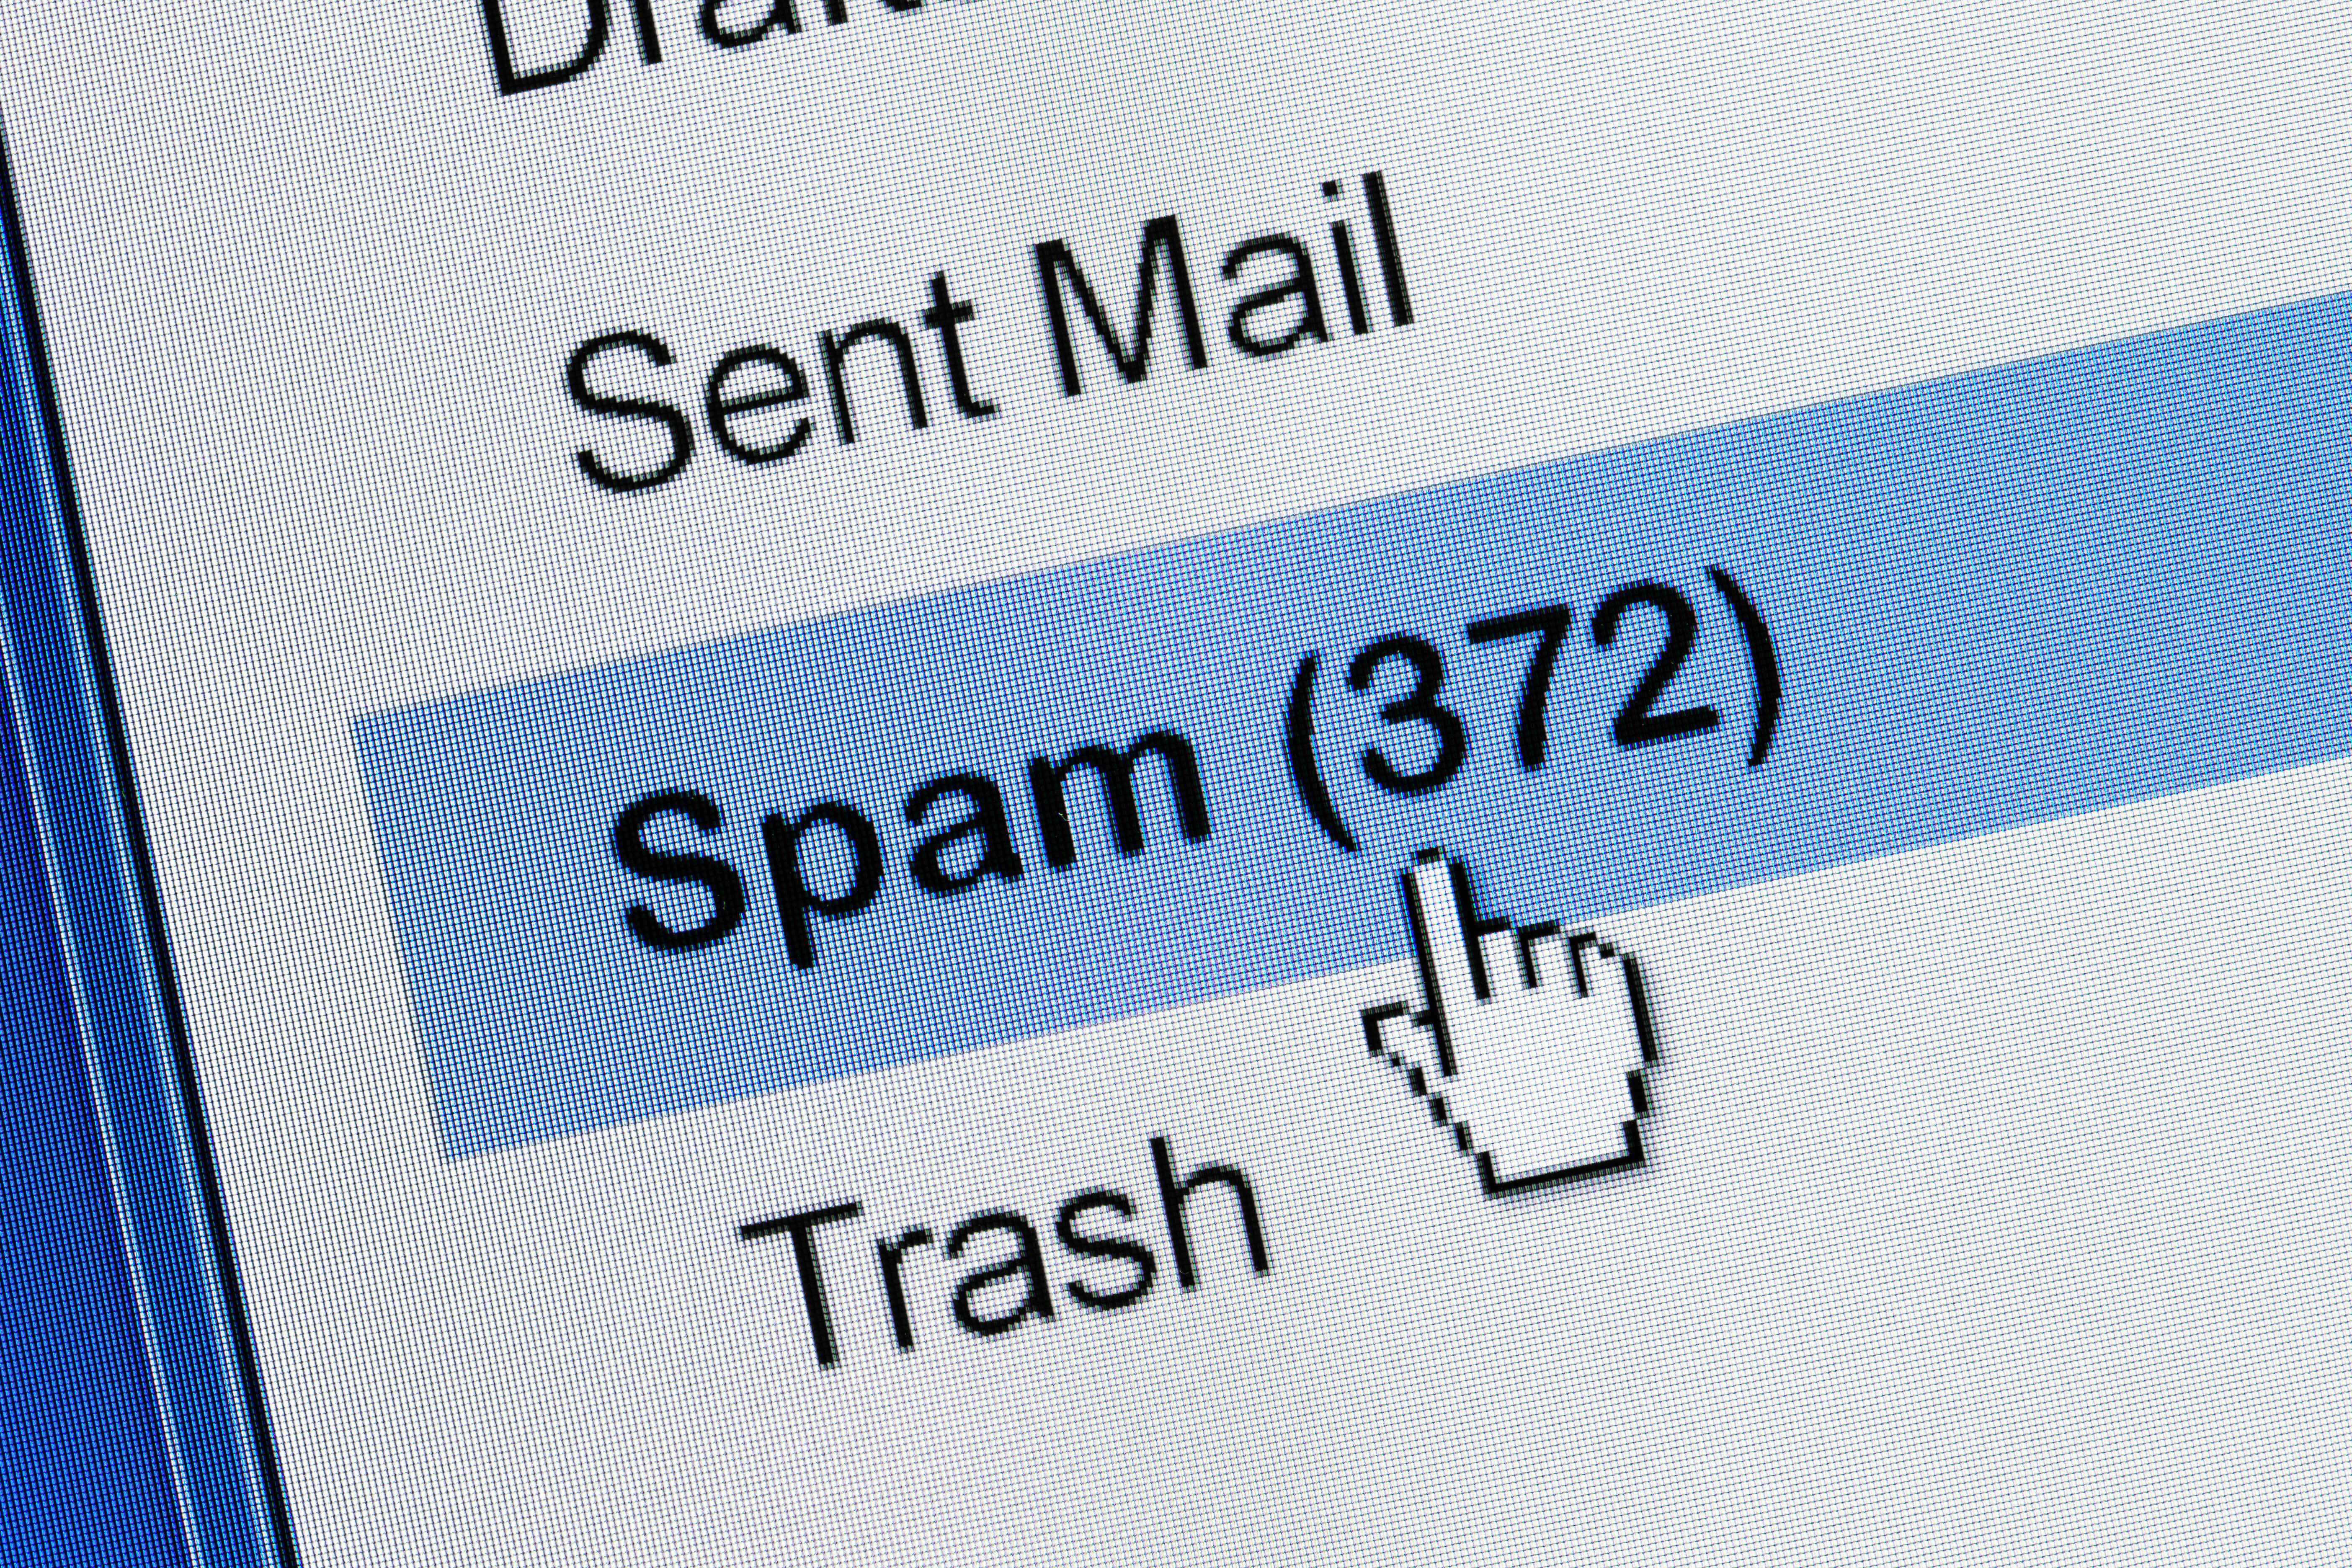 Spam box master.jpeg